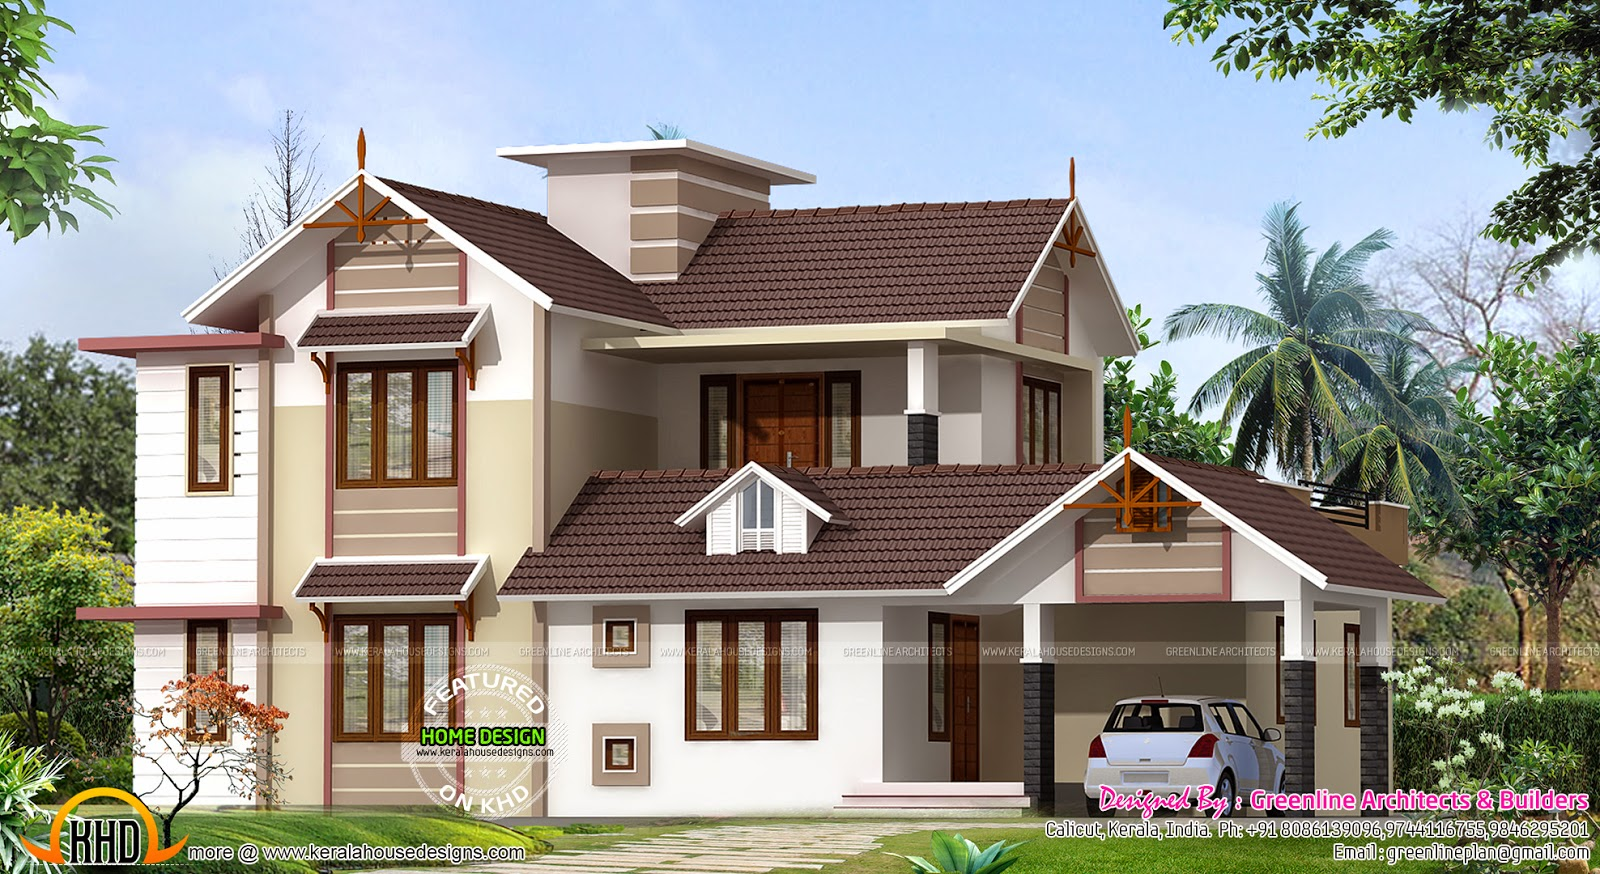 2400 sq ft new house design kerala home design and floor